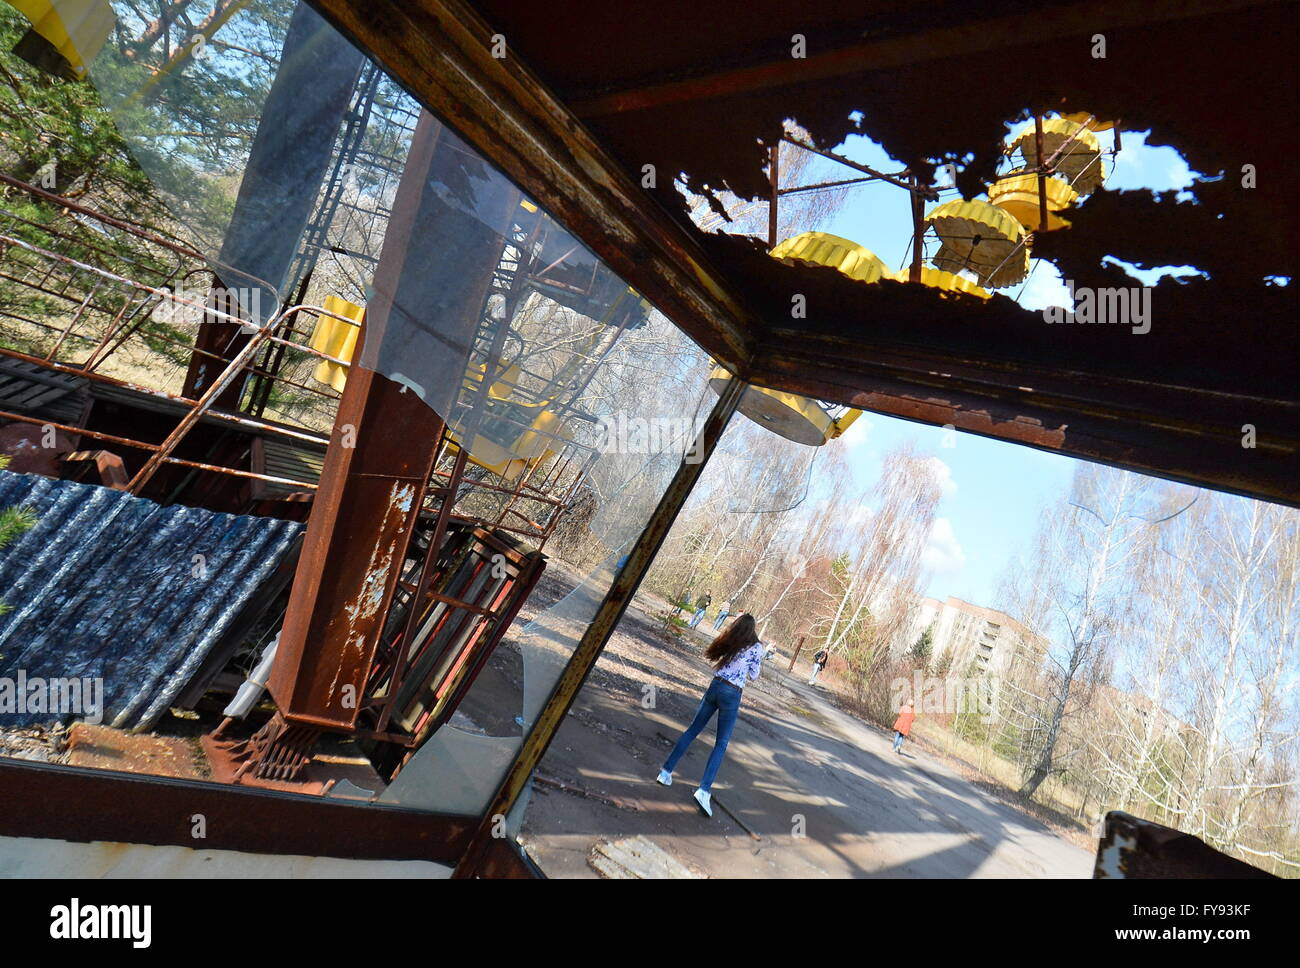 PRIPYAT, UKRAINE. Pictured in this file image is a ferris wheel in the abandoned town of Pripyat near the Chernobyl - Stock Image